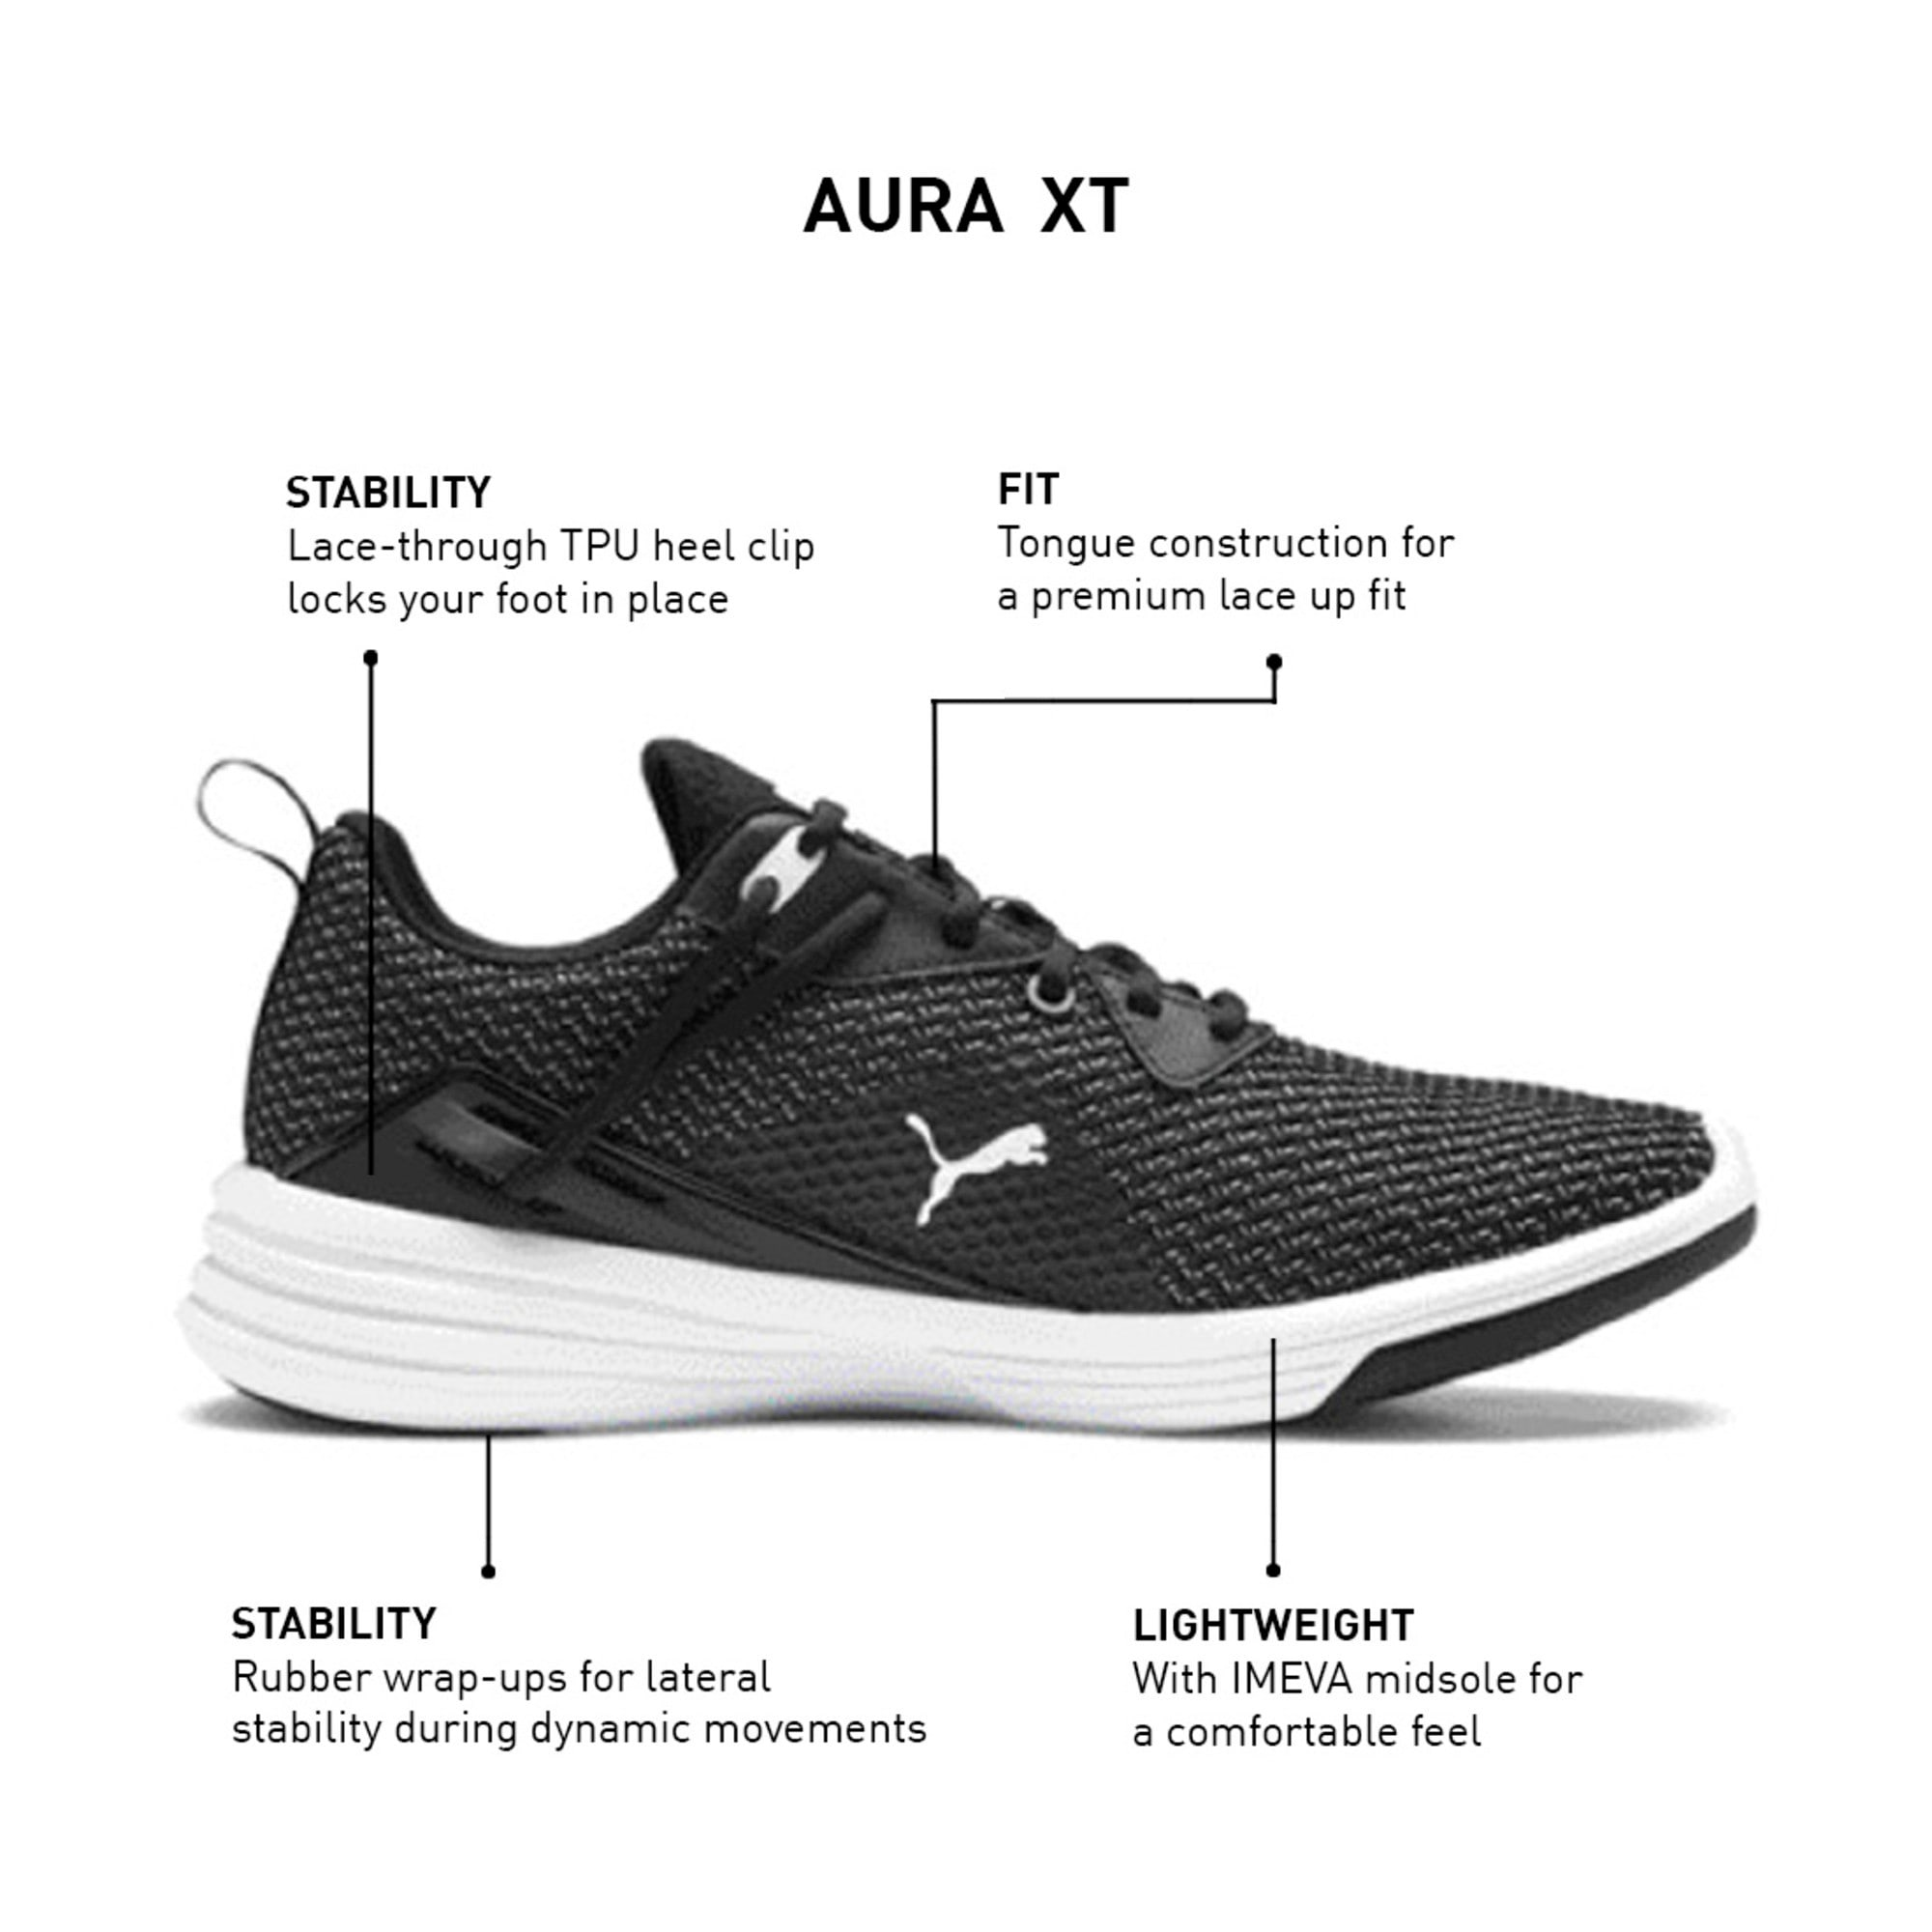 Thumbnail 9 of Aura XT Men's Trainers, Puma Black-Puma White, medium-IND